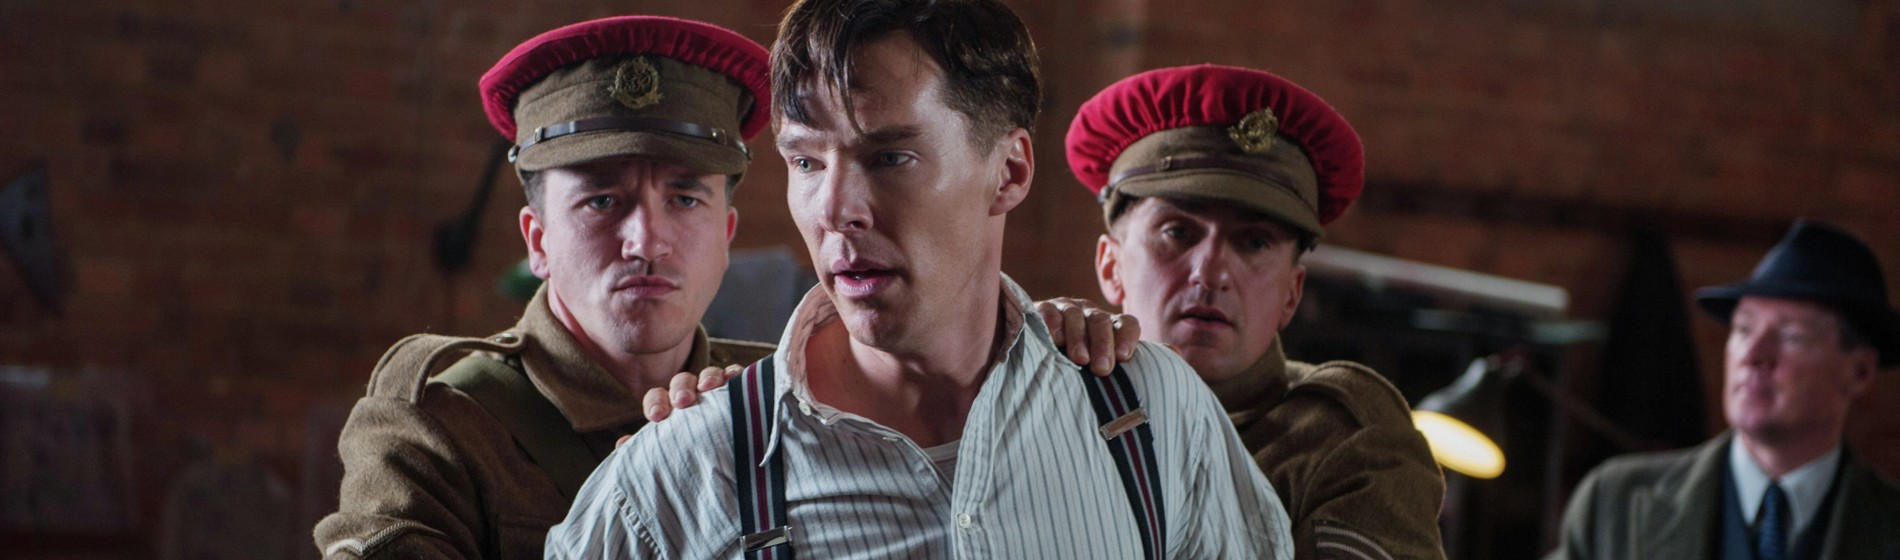 The-Imitation-Game-Featured-1900x560-1409556026